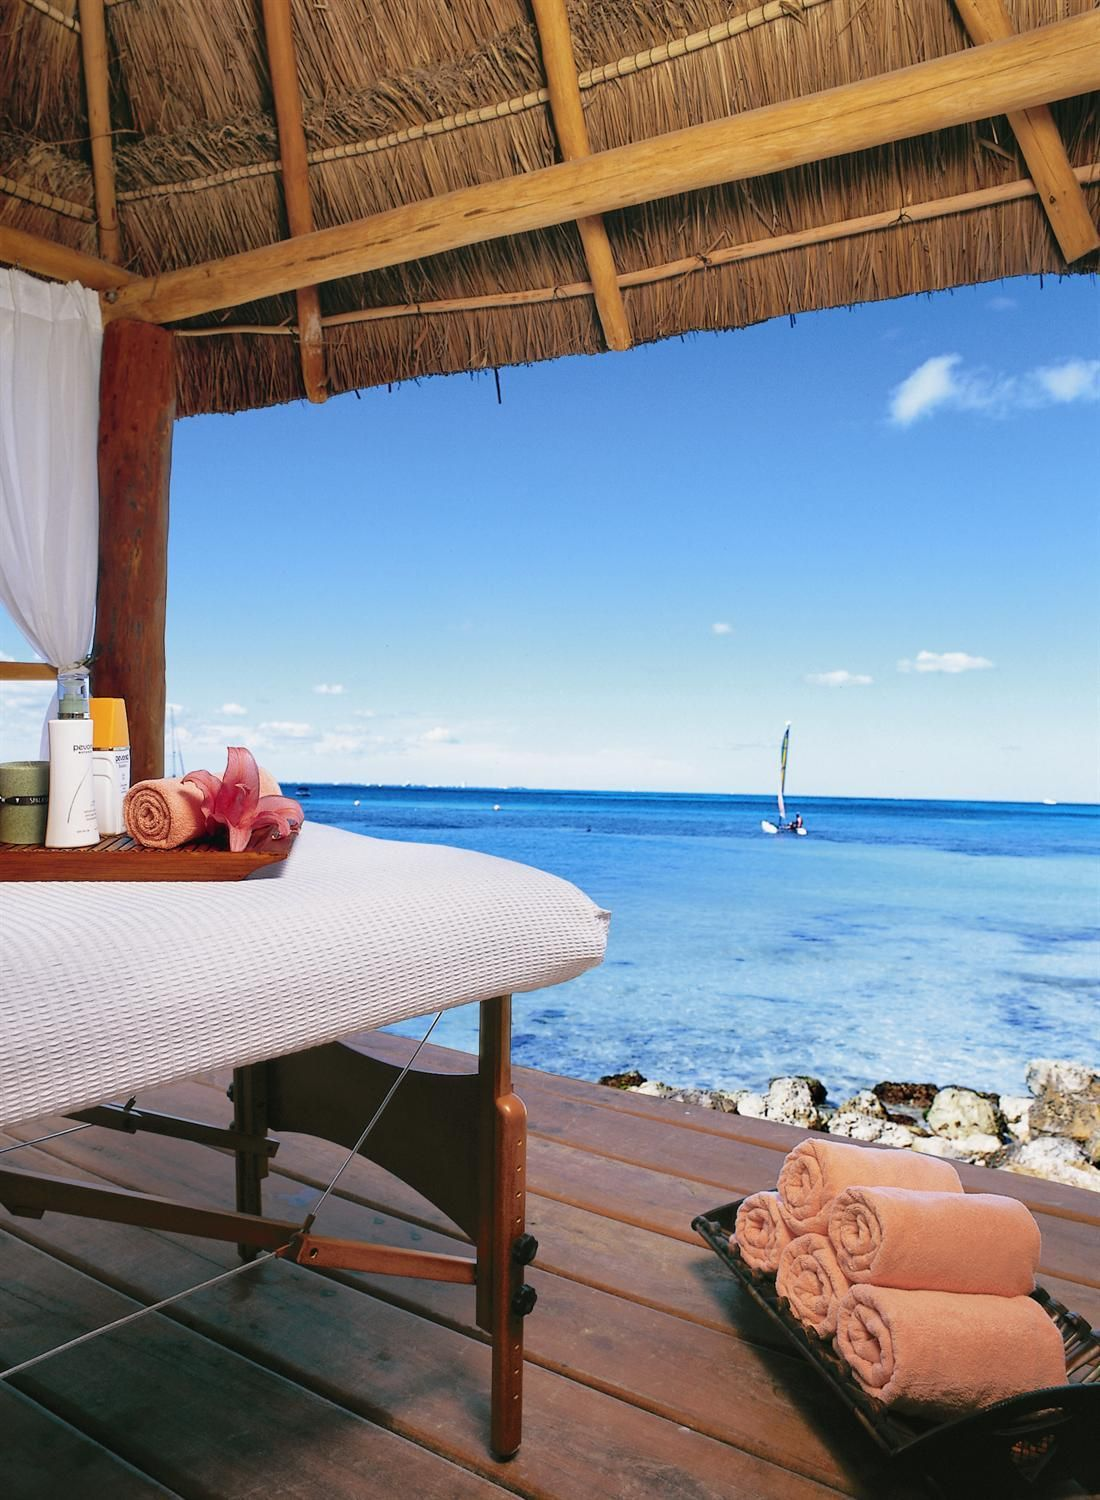 Spa Massage Room Spa Massage Room Dreams Spa Massage Therapy Rooms